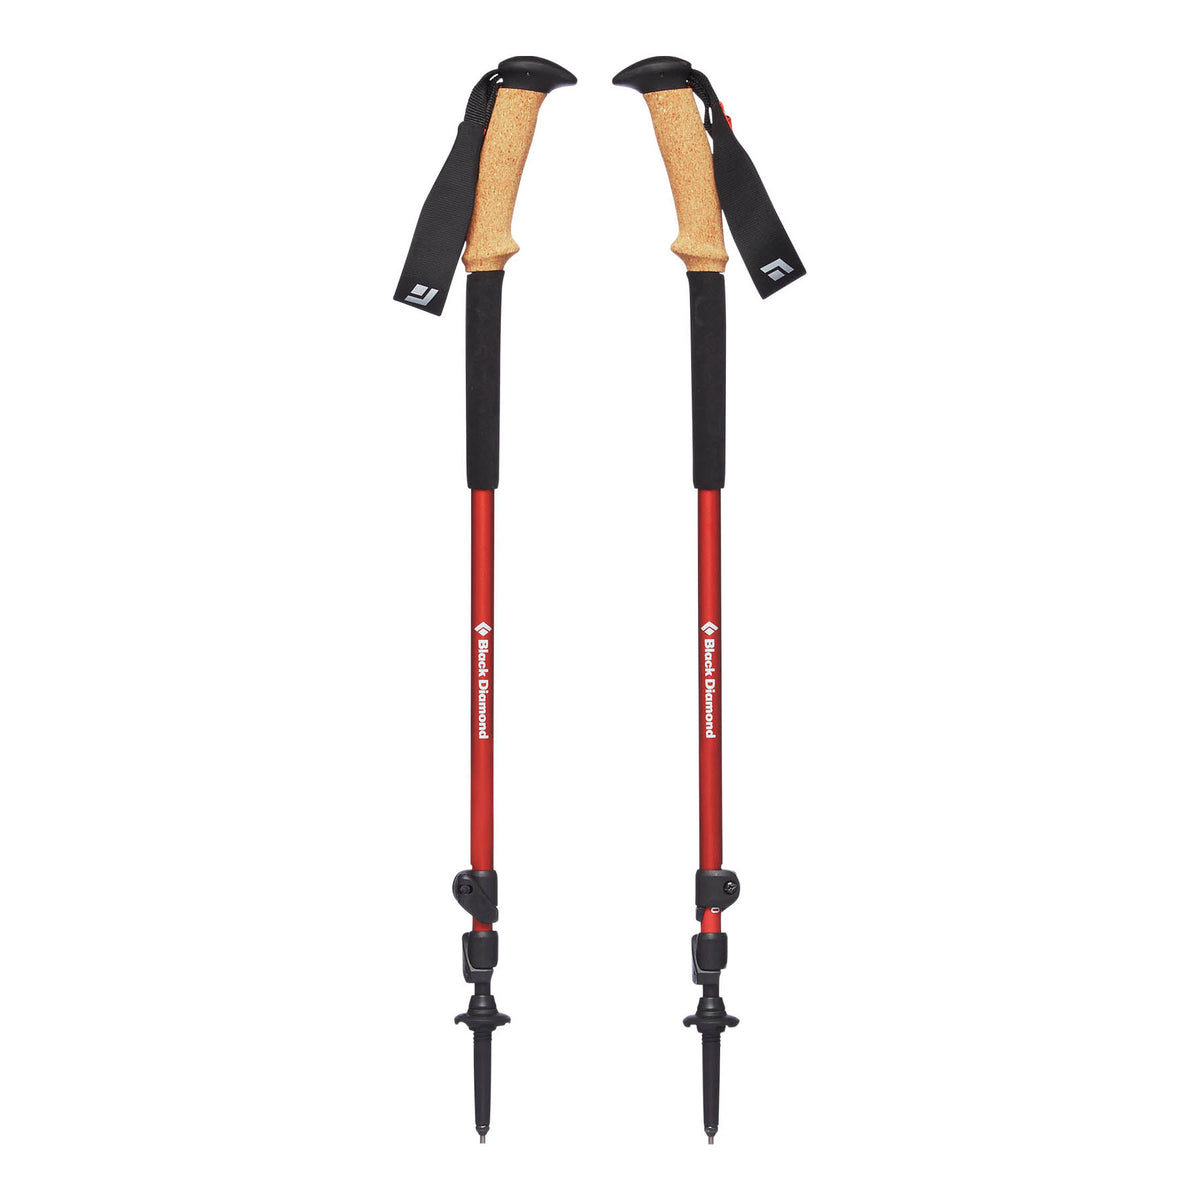 Pair of Black Diamond Trail Ergo Cork poles, shown collapsed with angled cork grips